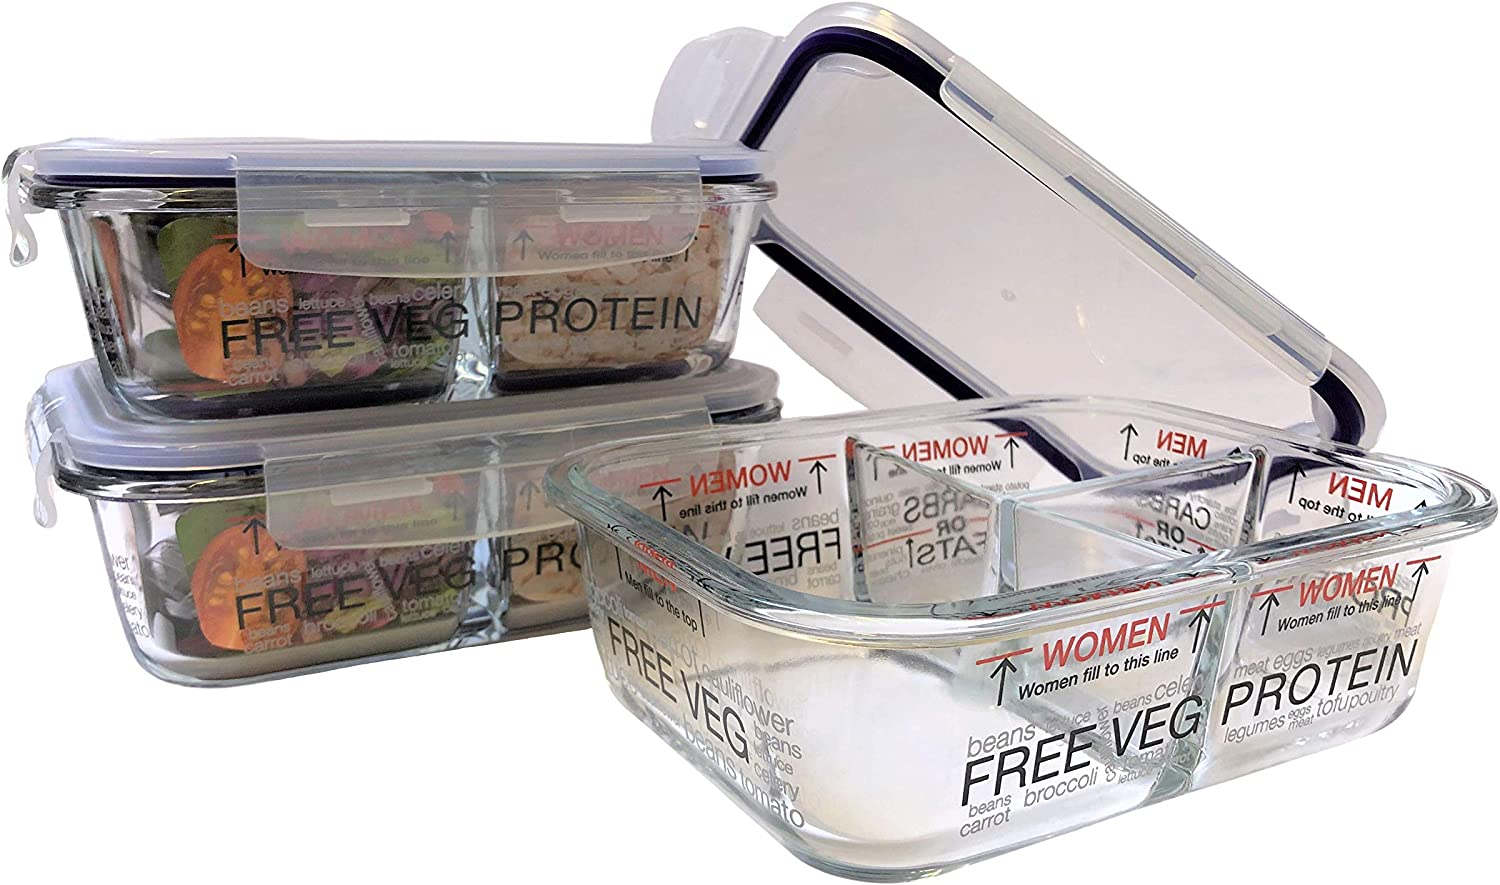 Portion Control Glass Meal Prep Container/Lunchbox 3pk, Weight-Loss for Men & Women, Heat Proof, 3 Compartment + Lids, Practical Weight Control with Clear Instruction Guide by Portion Perfection